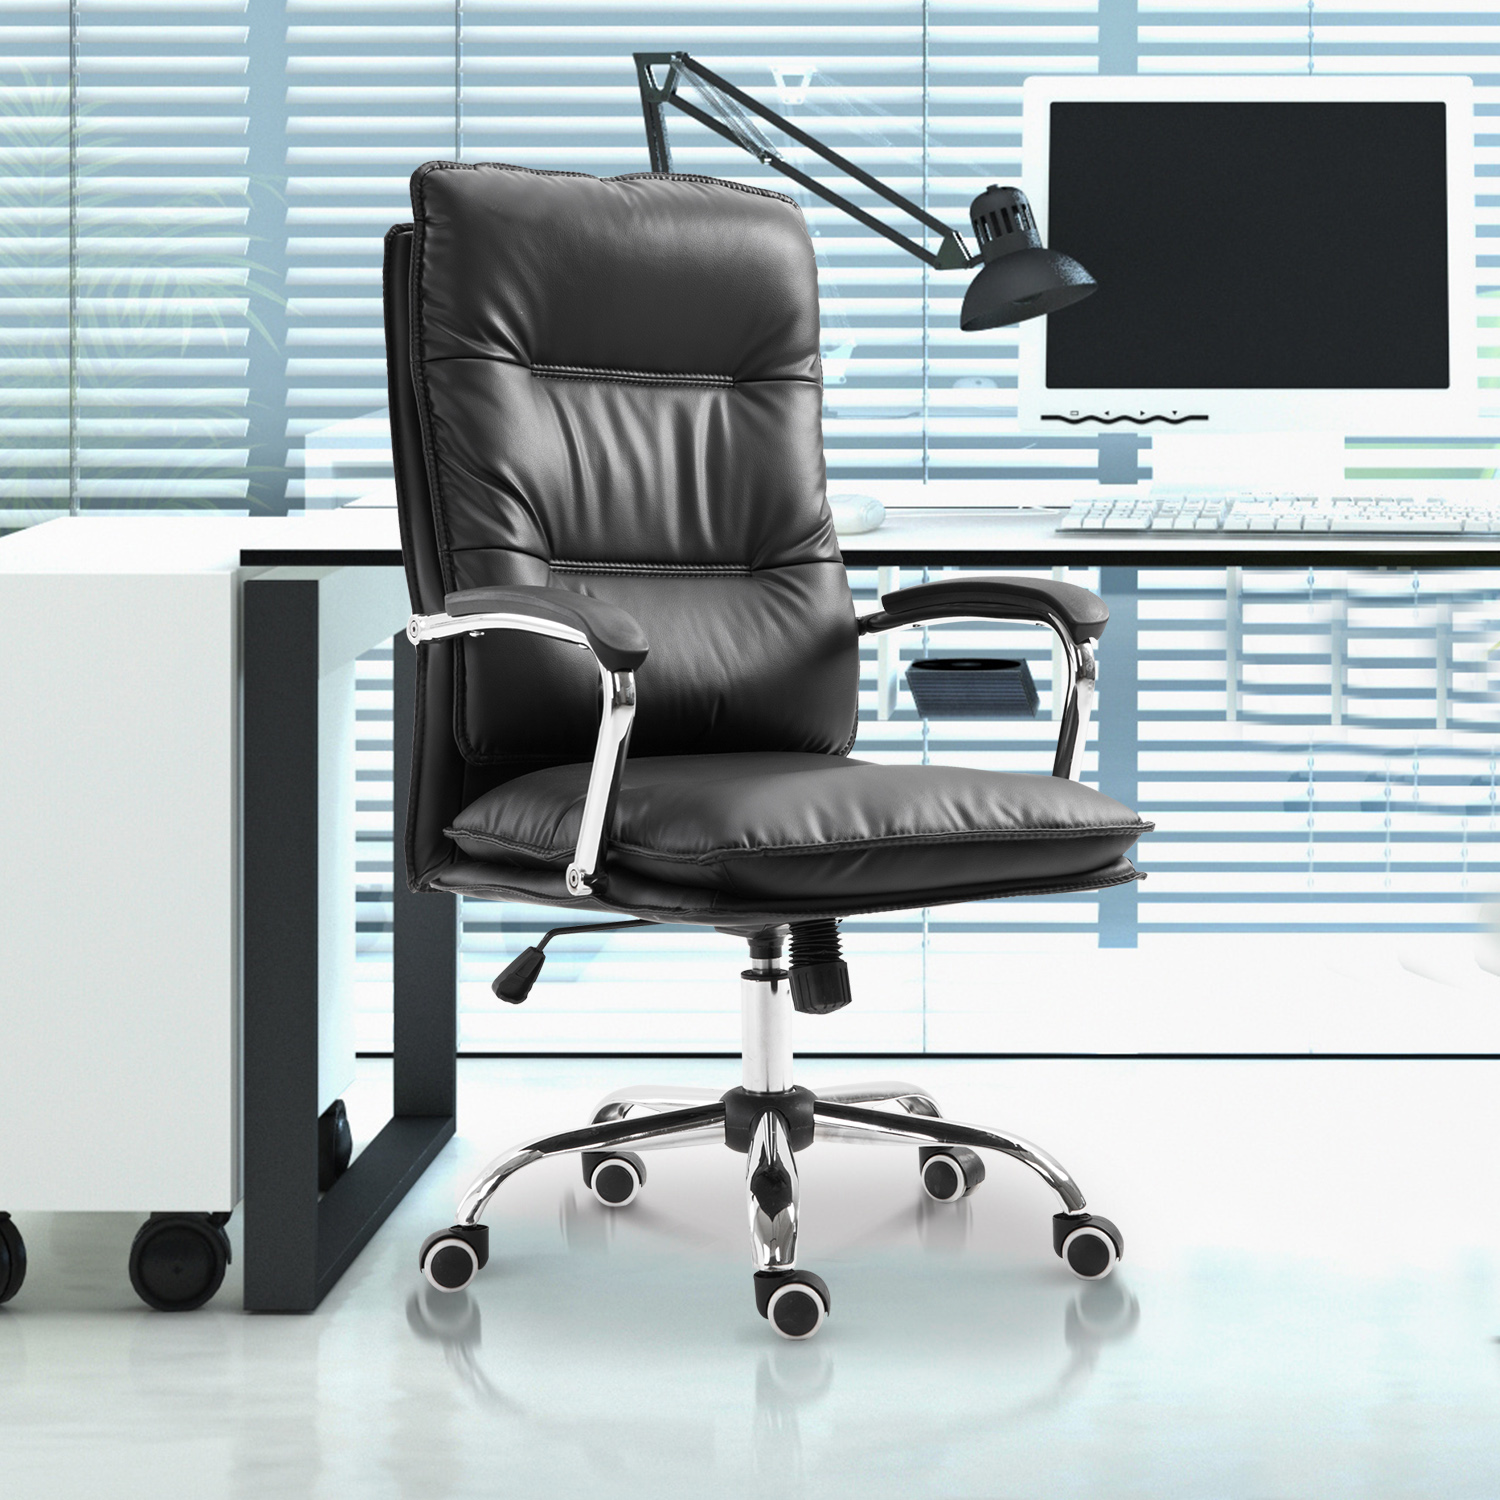 Image of CAD $124.99 Vinsetto High Back Office Chair Swivel Seat PU Leather Black / Adjustable Executive Computer Desk with Padded Armrest Leathered Canada 95509792655